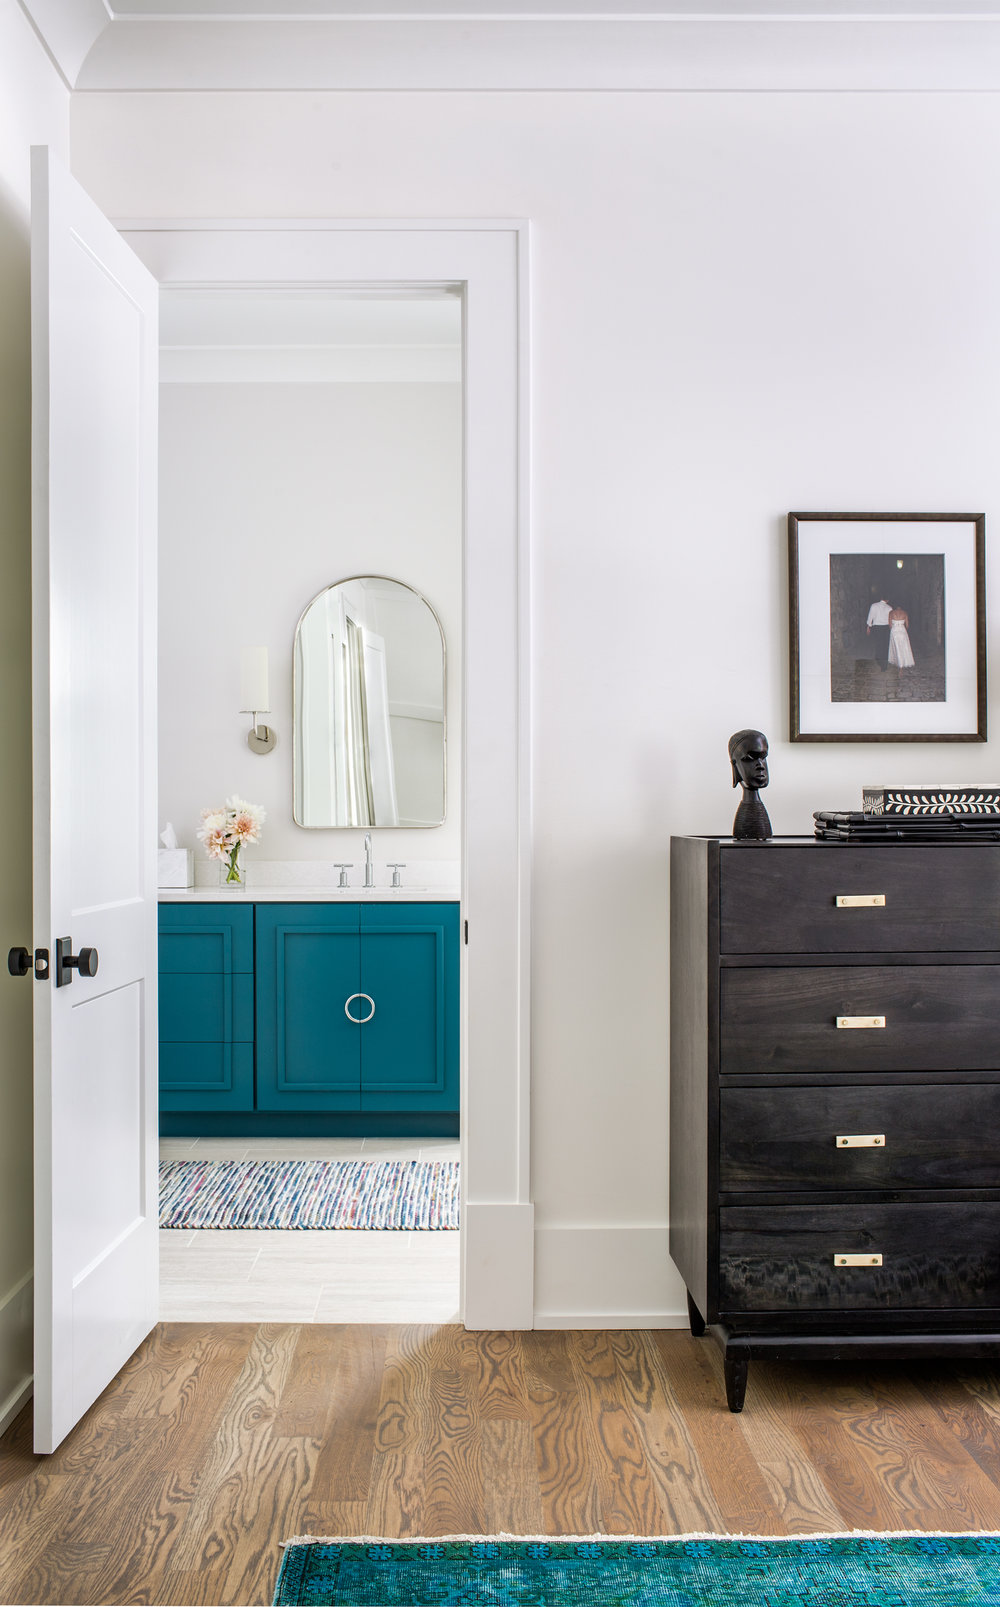 marietta master bedroom and bath | new construction | custom vanity | jeff herr photography